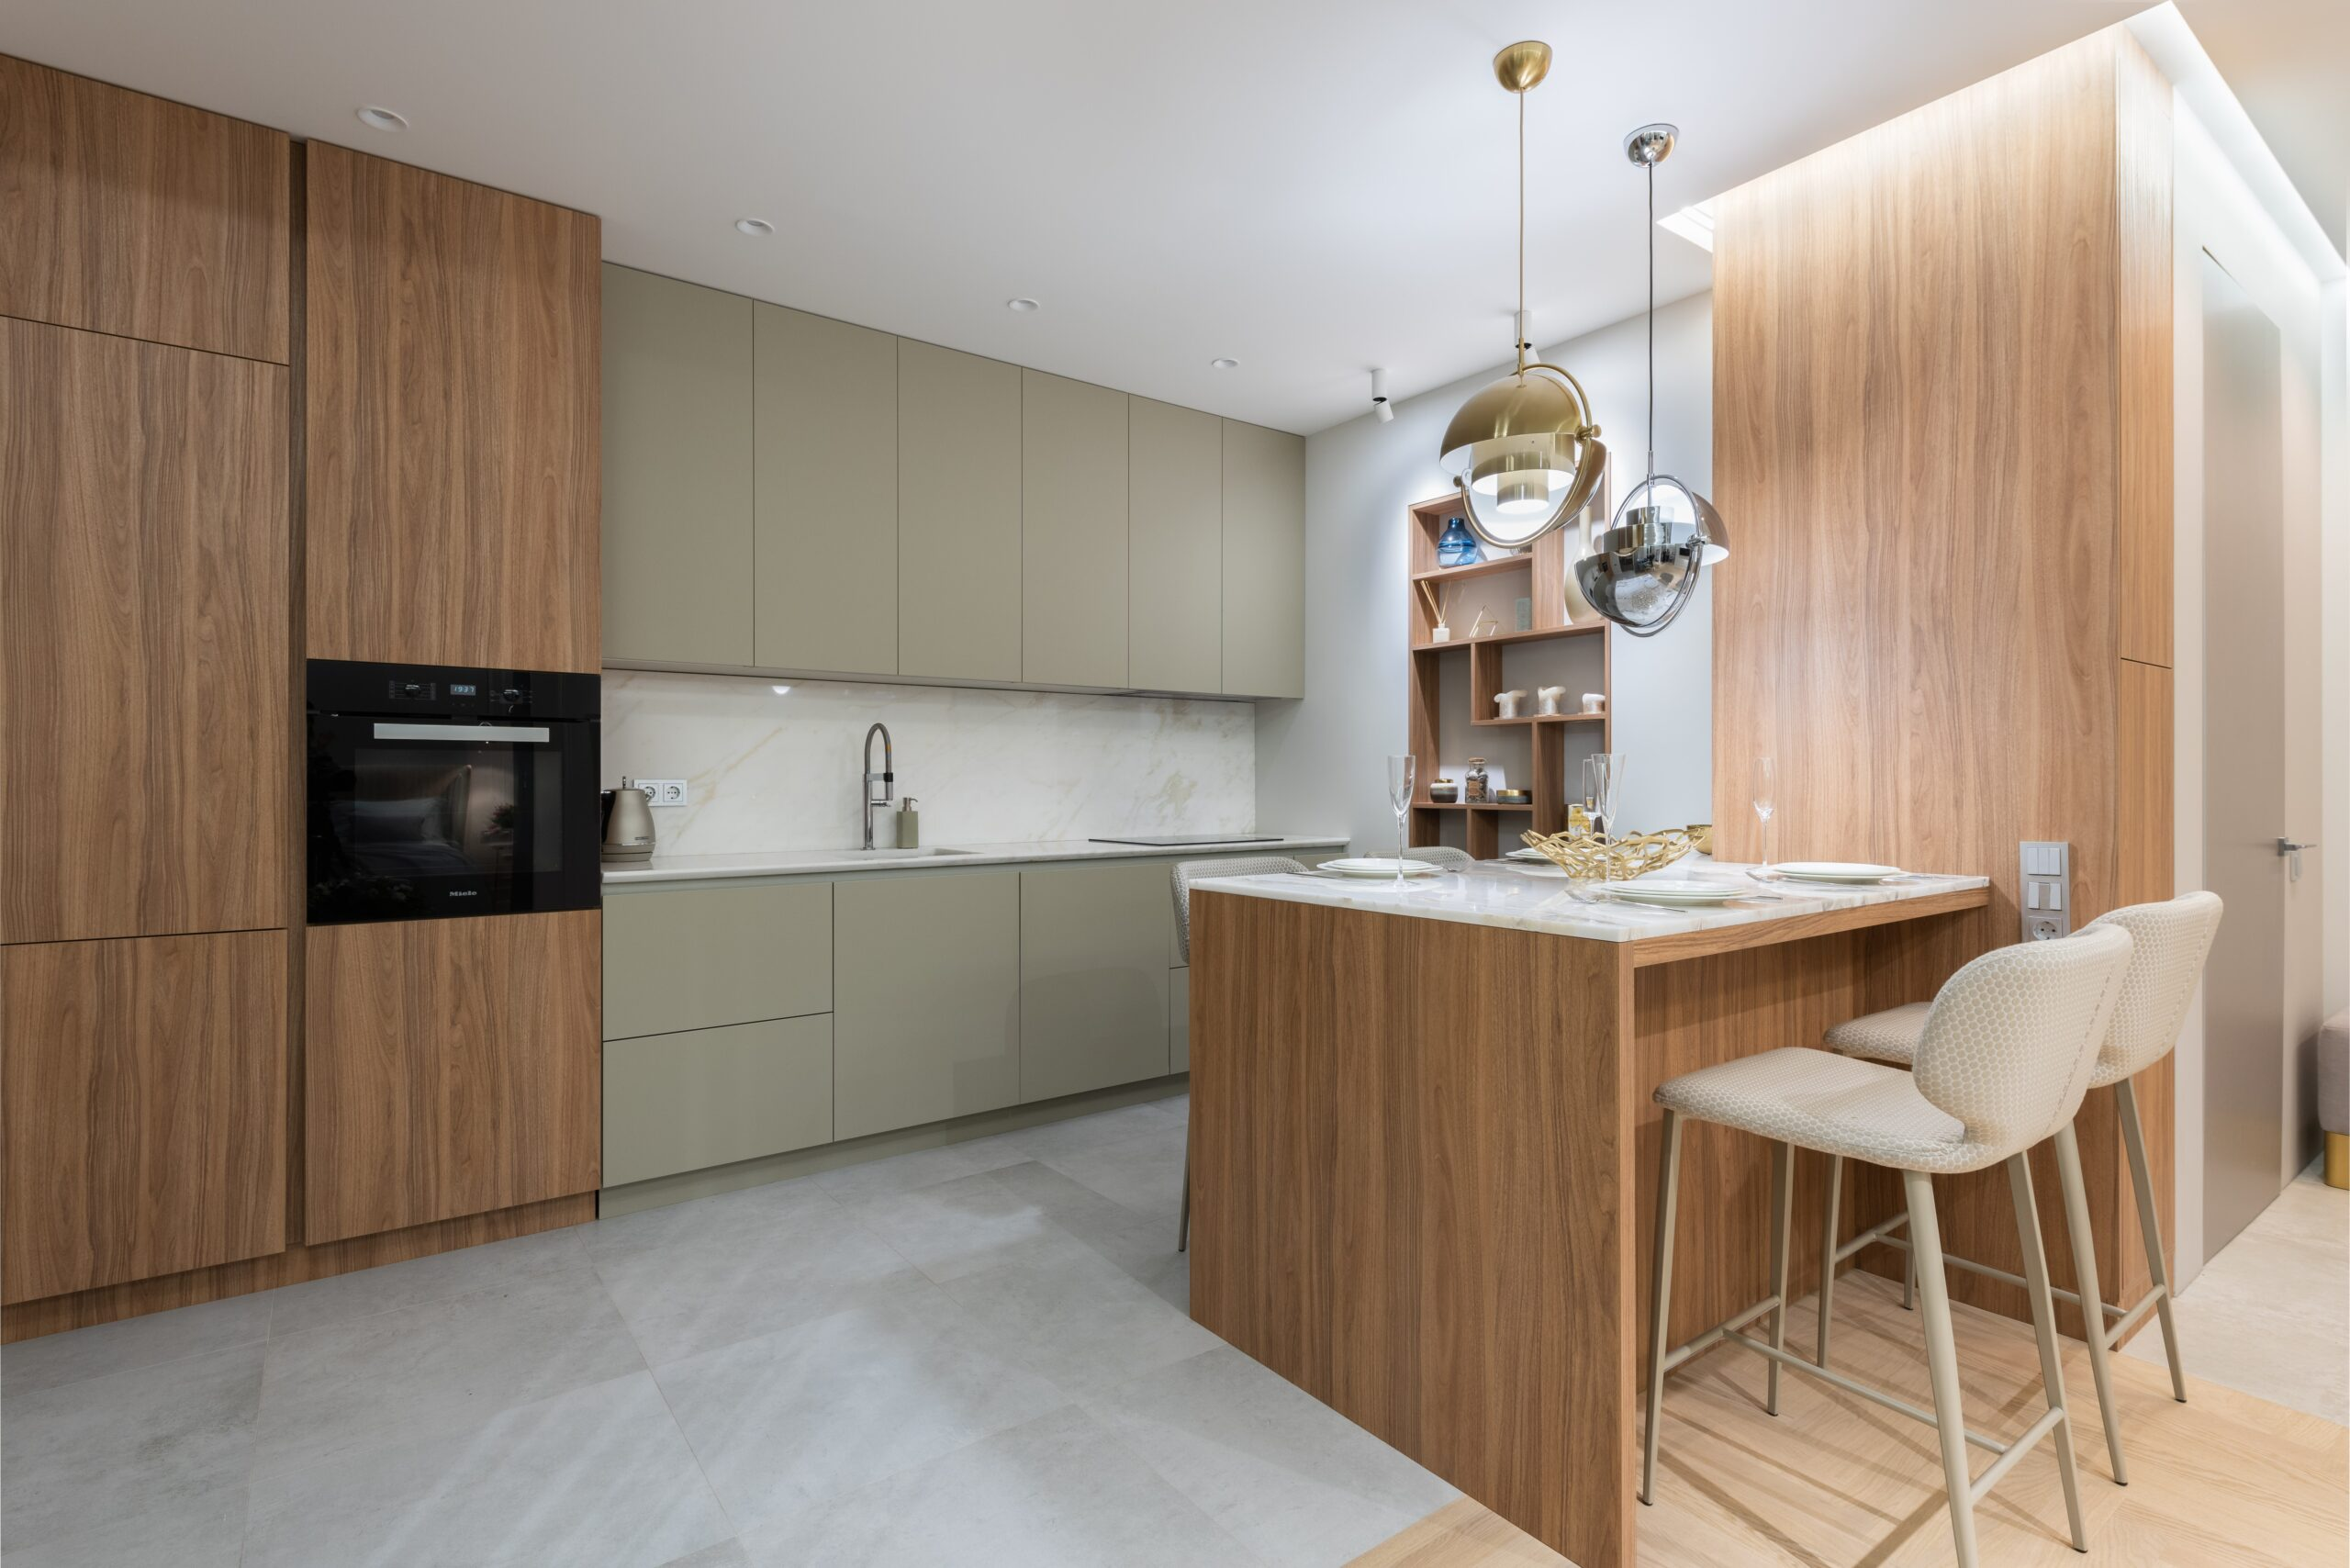 DIning area with lights in the cabinets